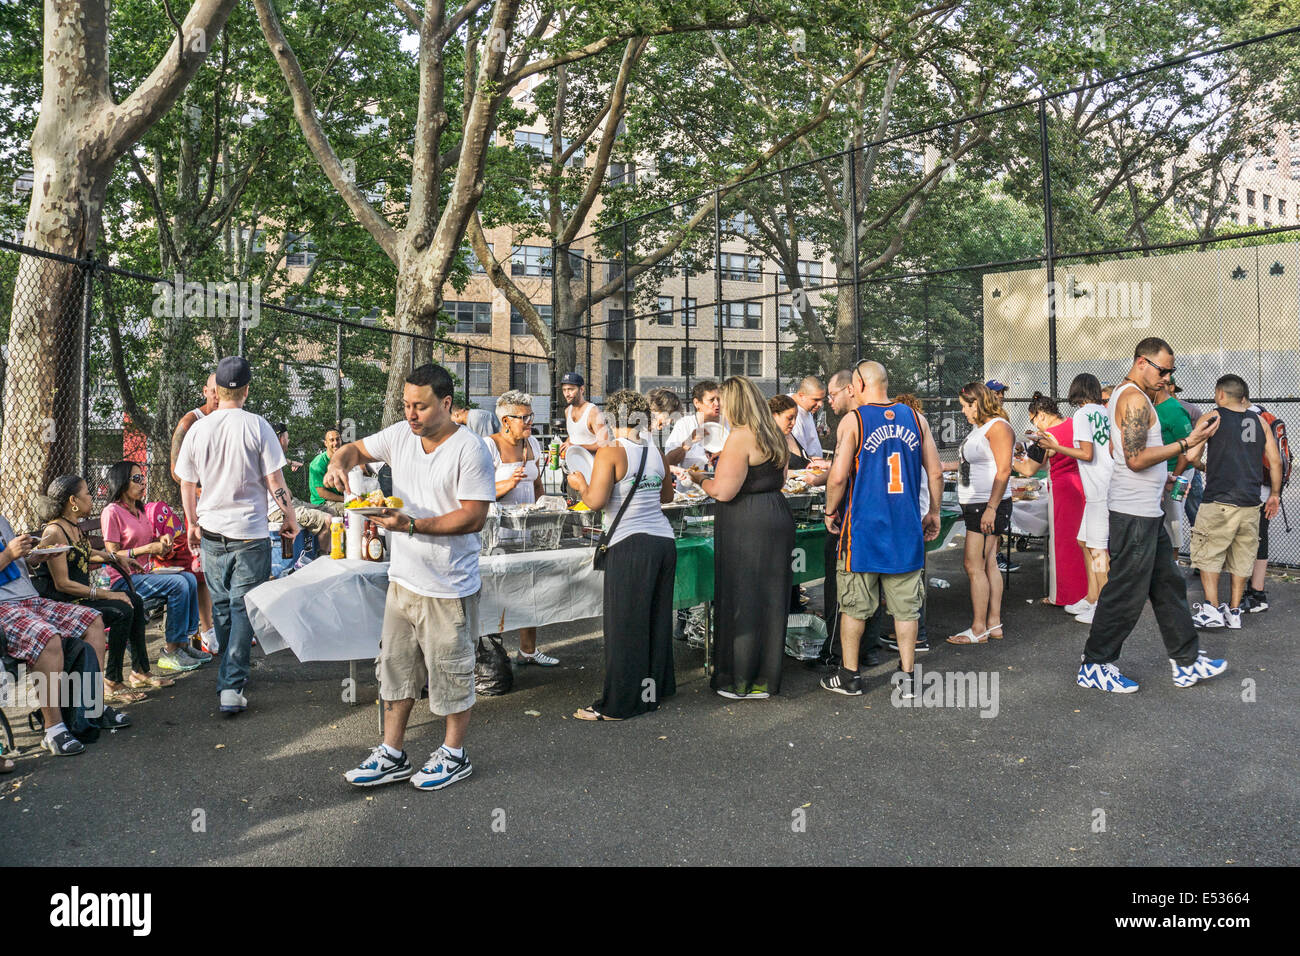 hungry people in serving line for delicious picnic supper as man leaves table with plate piled high with corn & - Stock Image